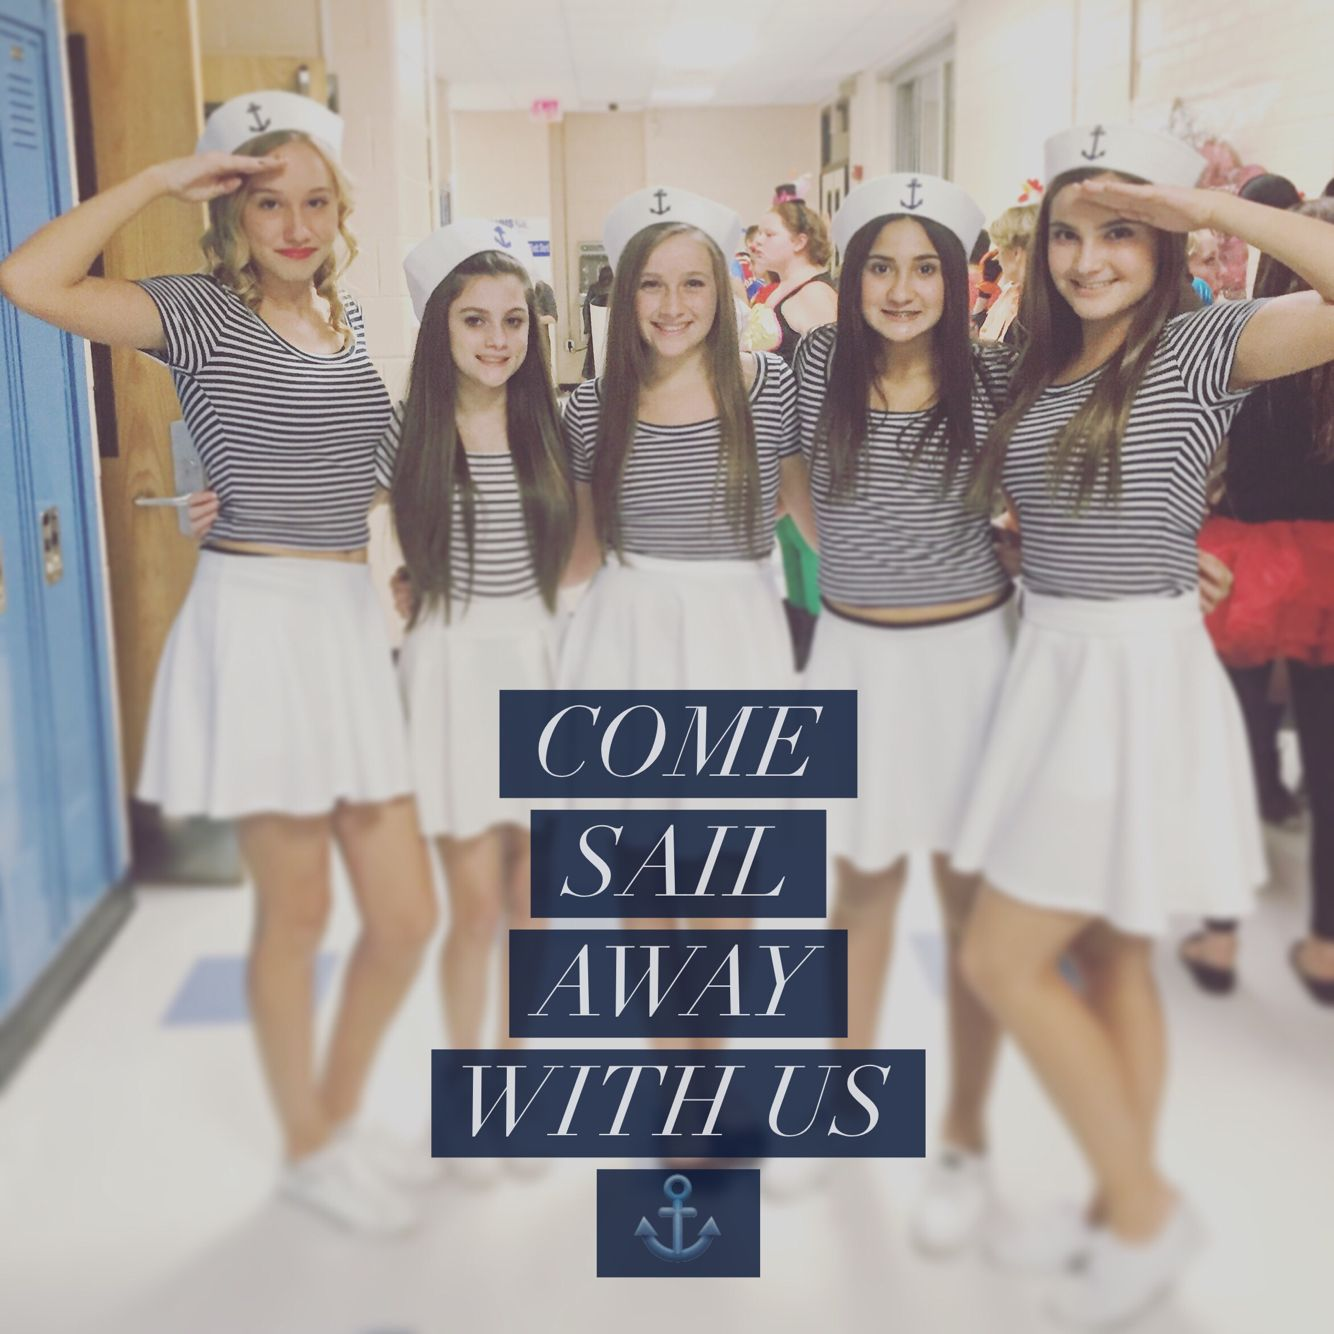 easy sailor costumes for teen girls diy halloween - Easy Homemade Halloween Costumes Teens